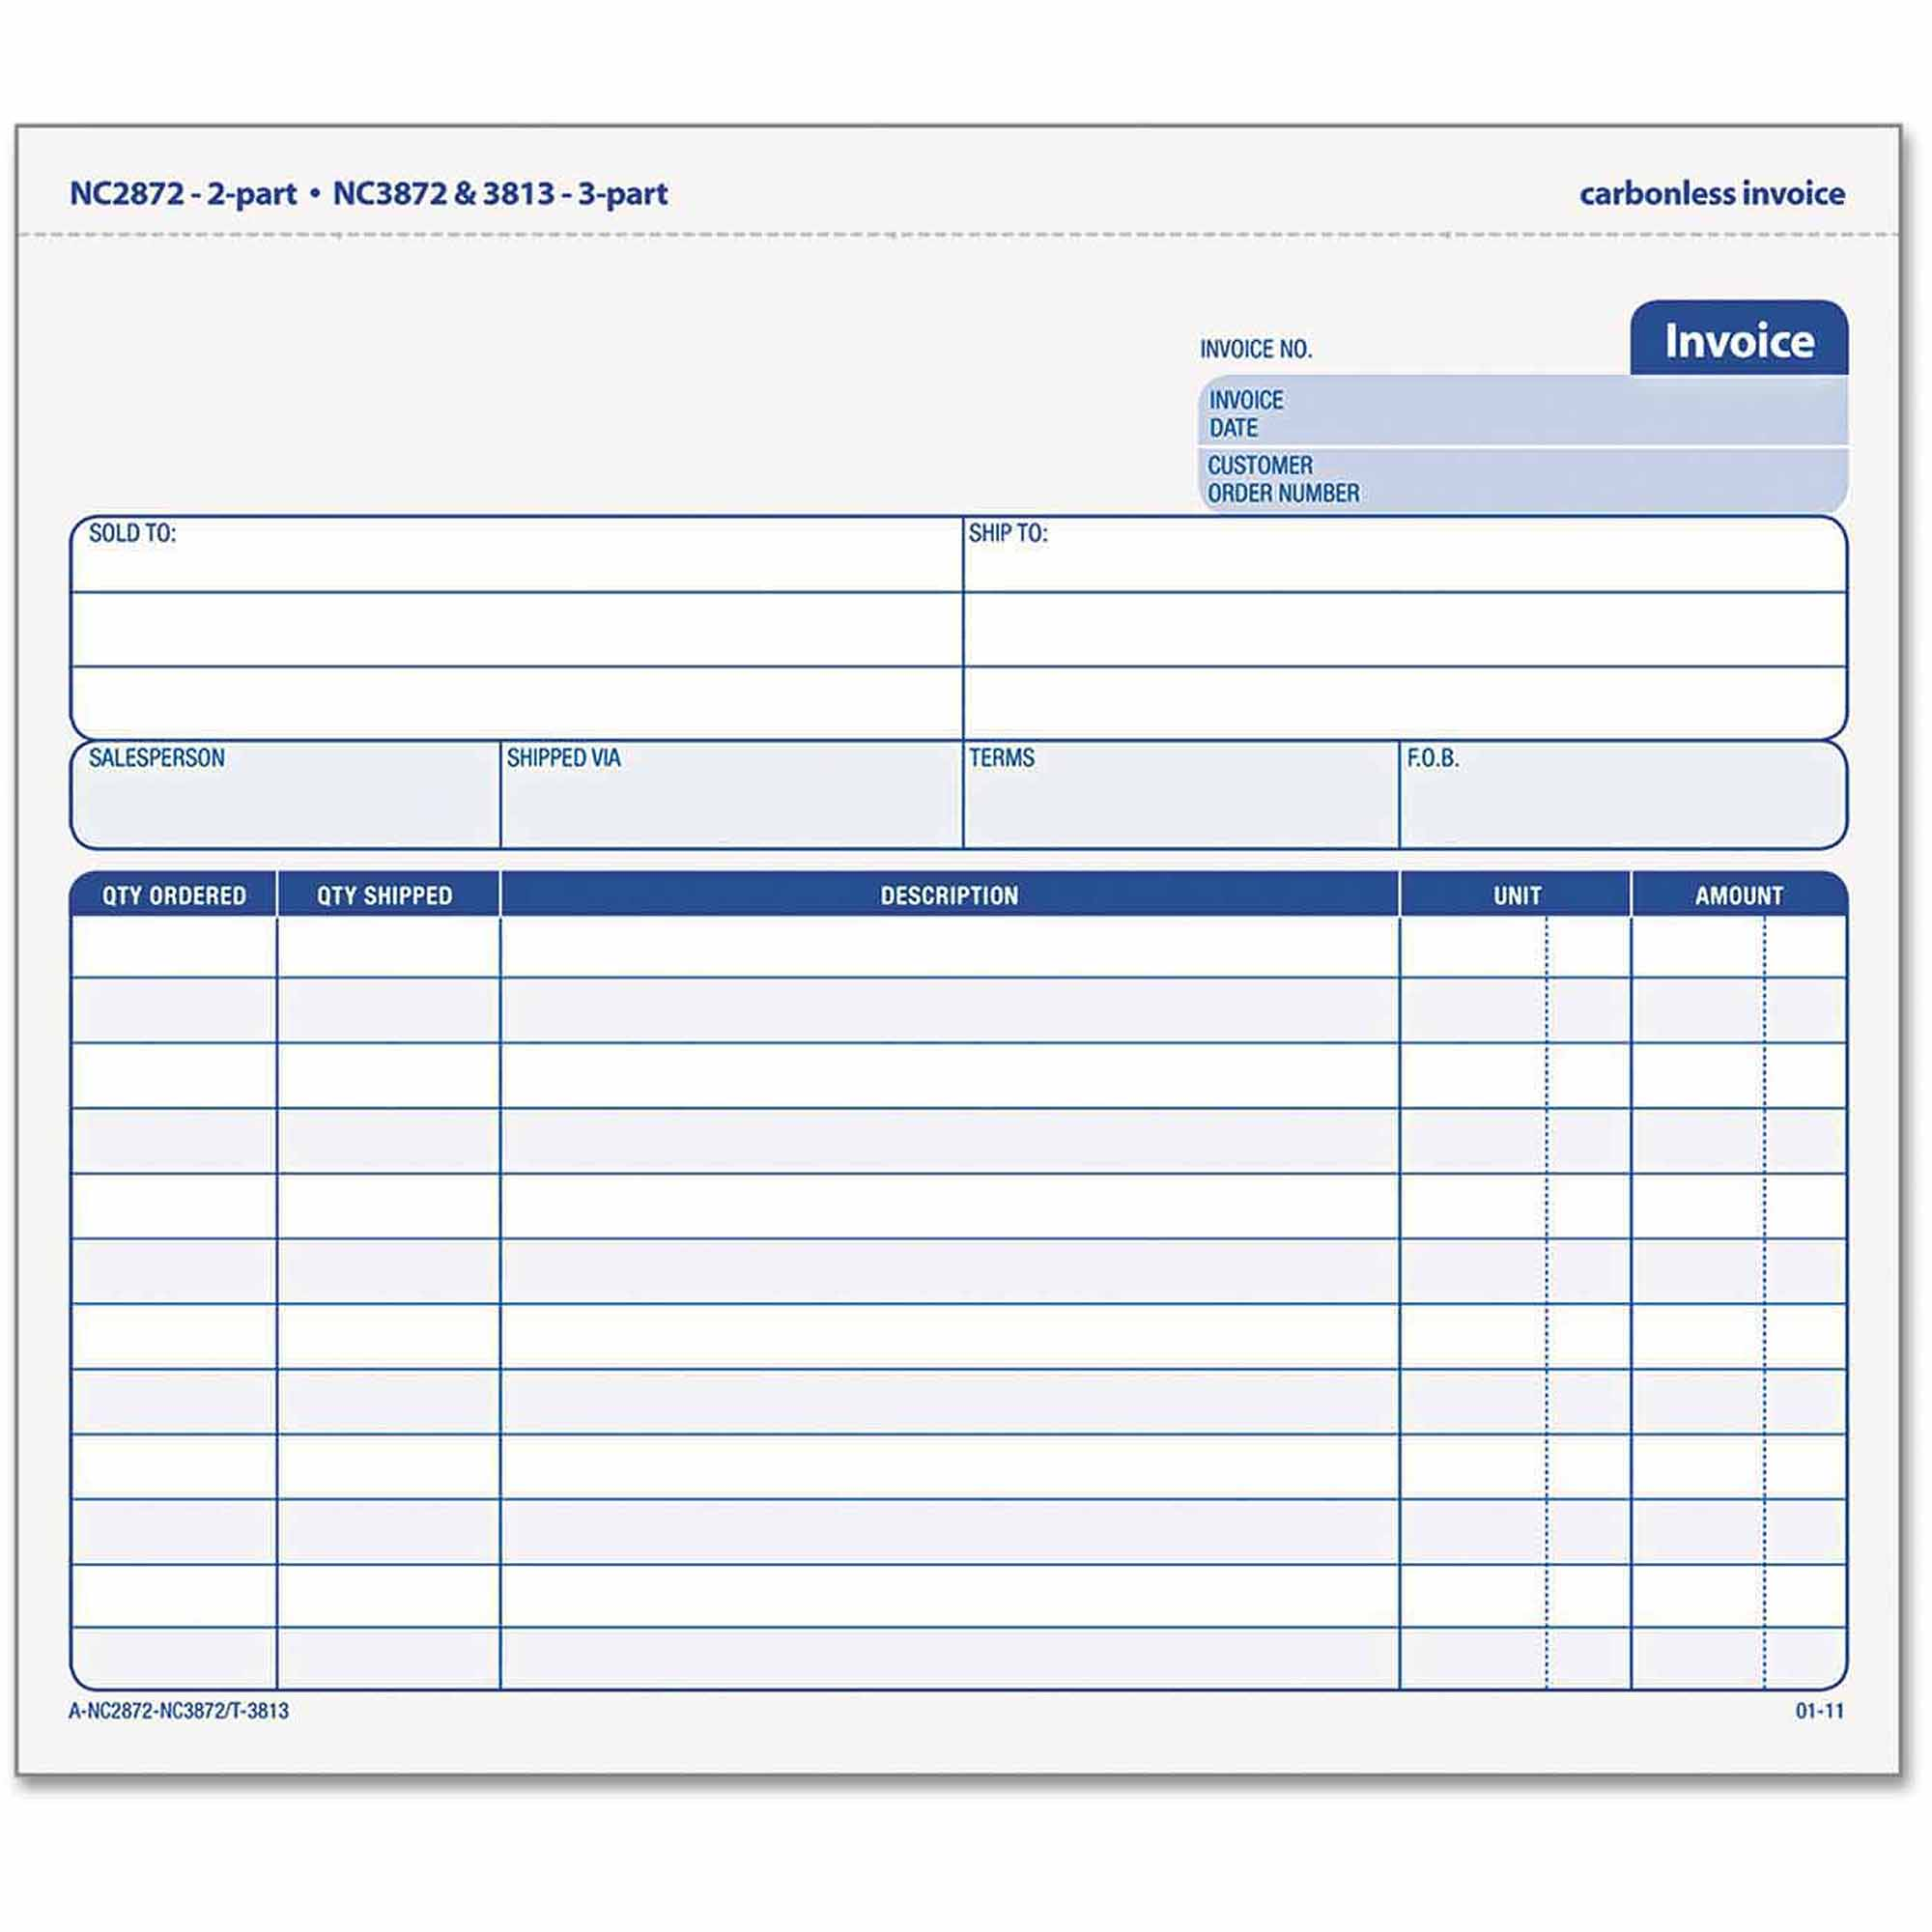 "TOPS Snap-Off Invoice, 8.5"" x 7"", 3-Part Carbonless, 50 Forms"